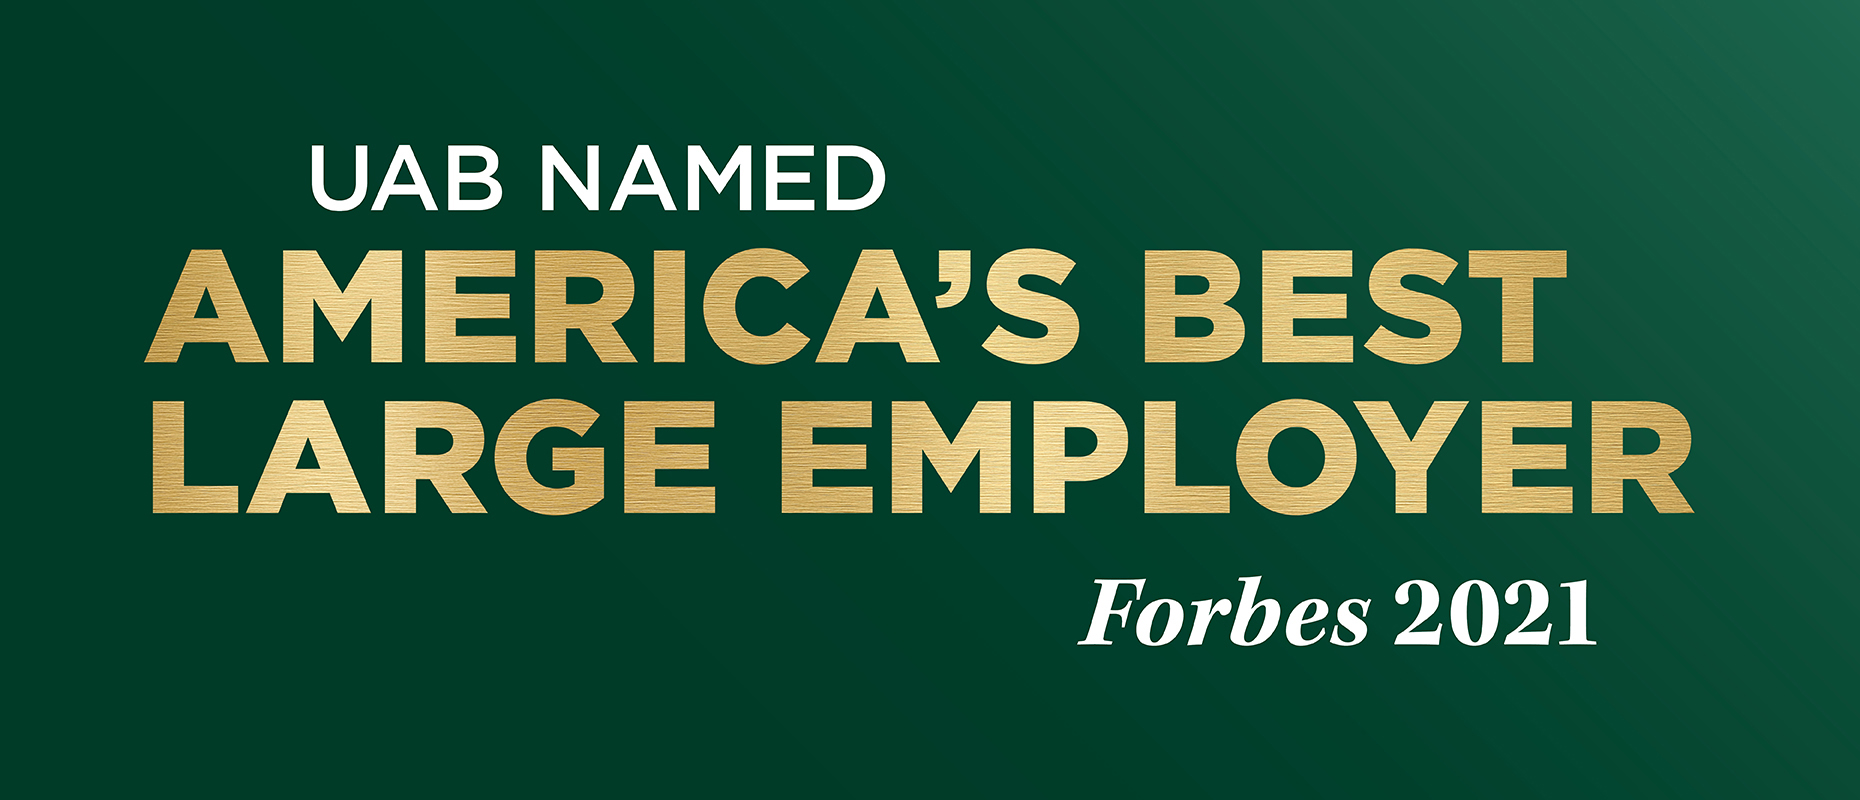 UAB named America's Best Large Employer by Forbes